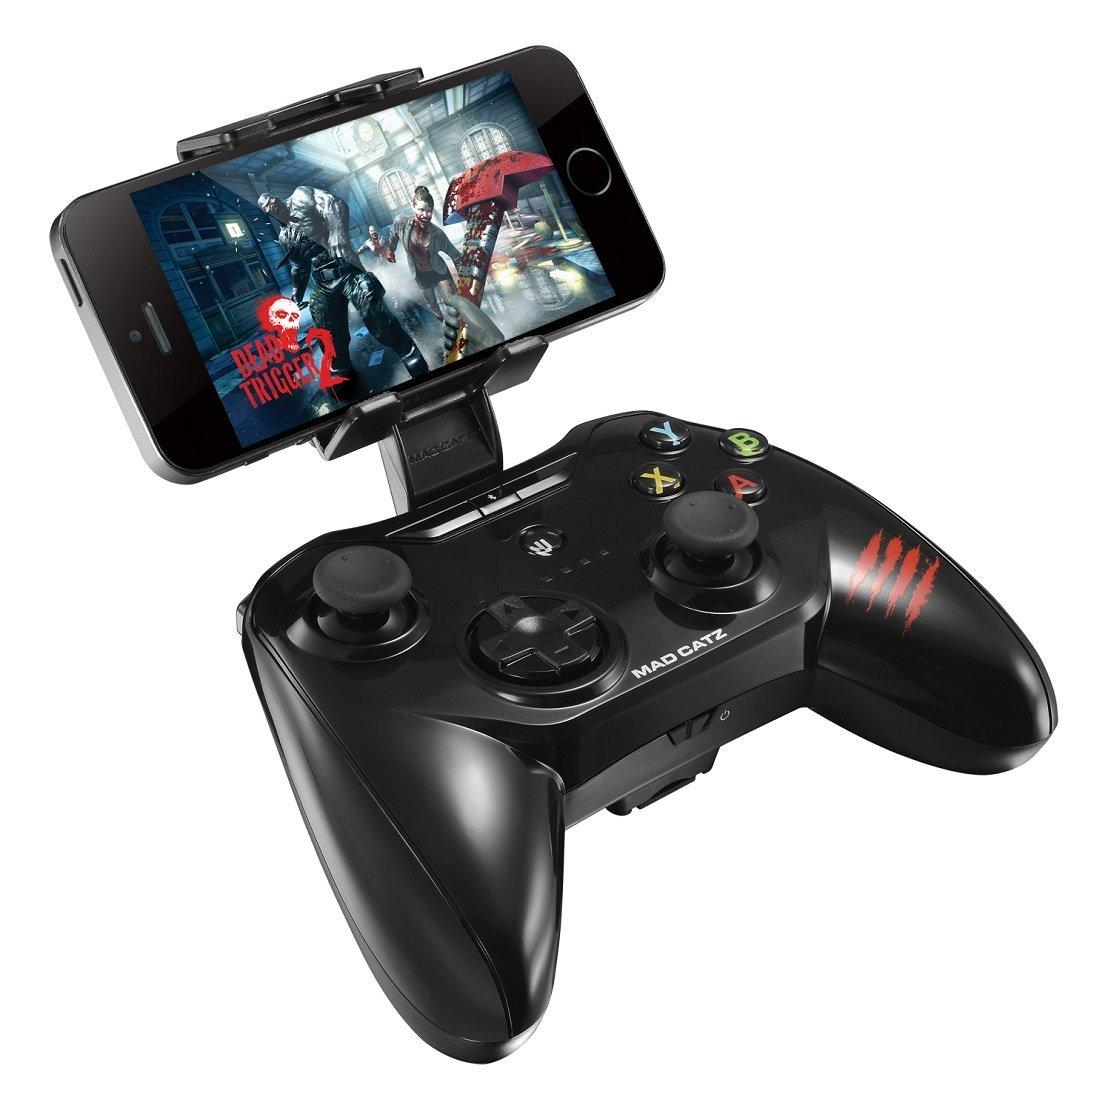 Mad Catz C.T.R.L.i Mobile Gamepad Made for Apple iPod, iPhone, and iPad